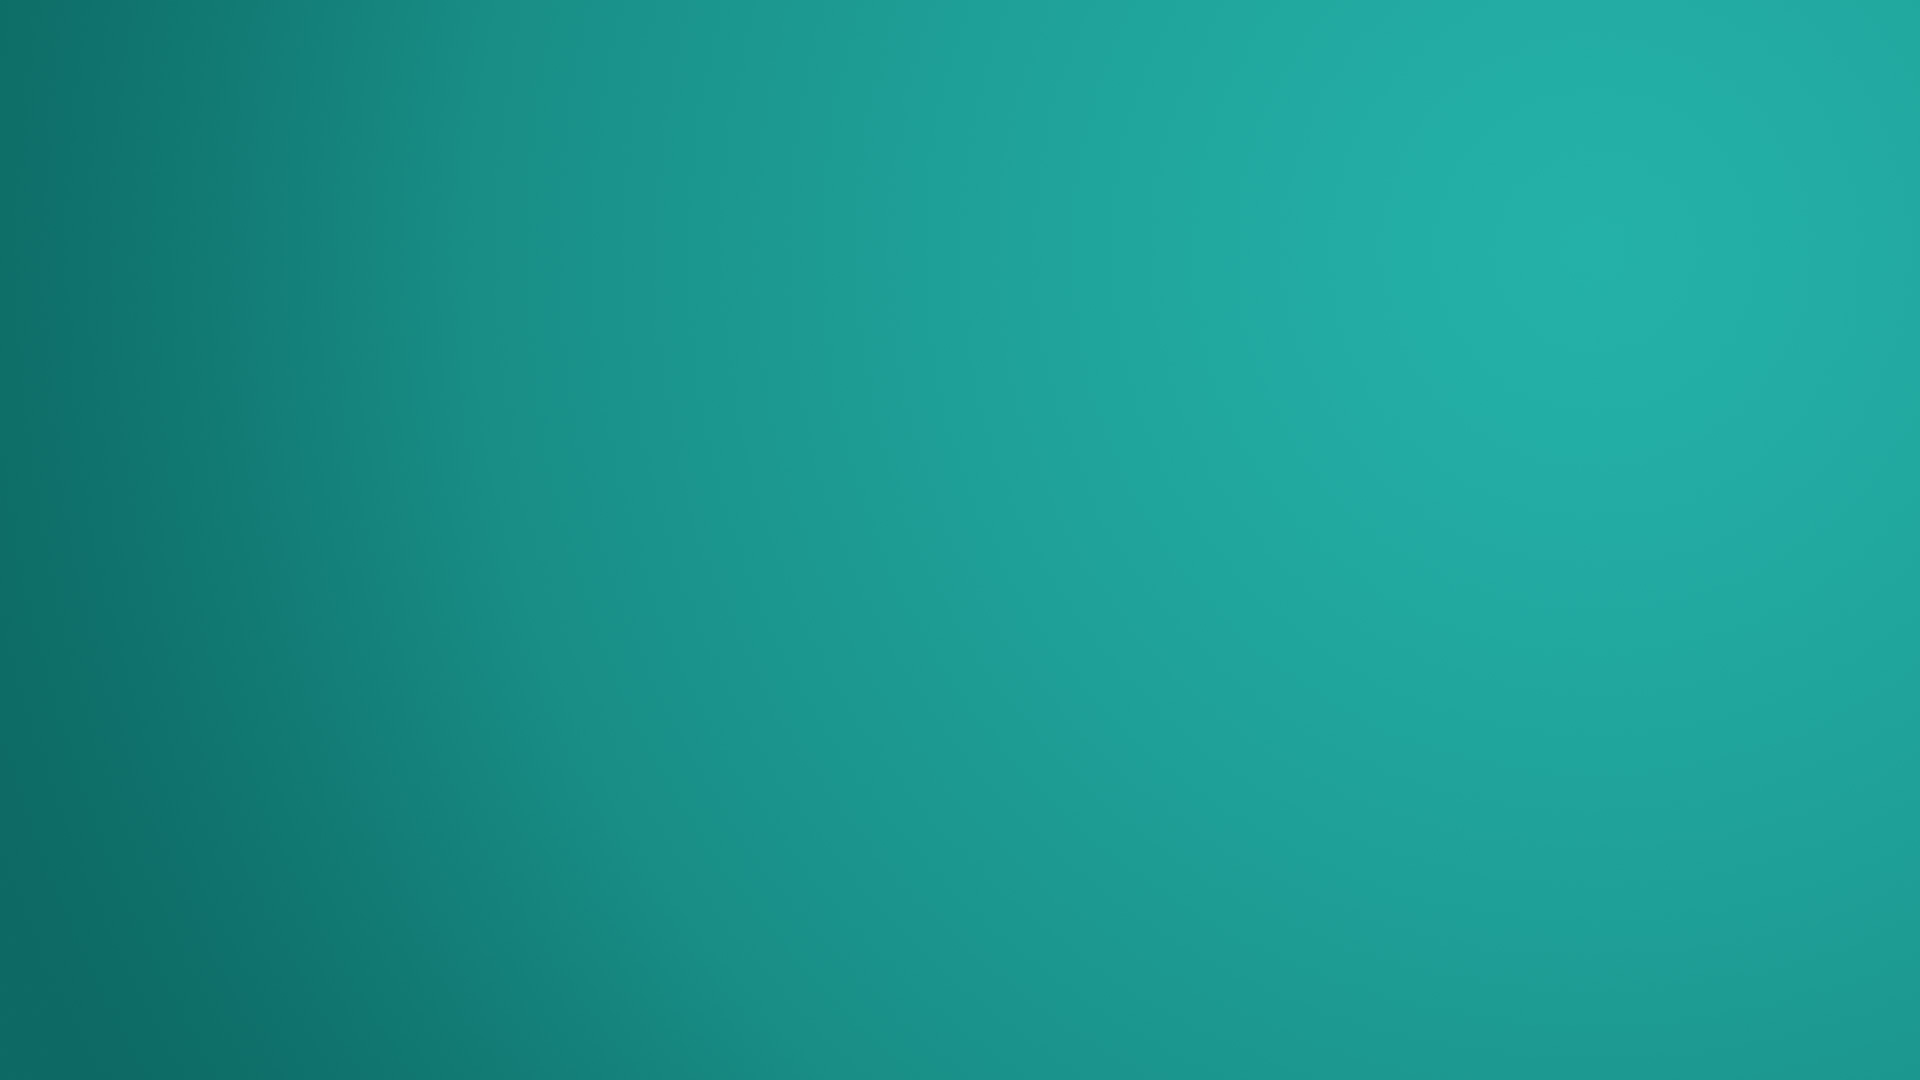 aqua-green-Presentation-Gradient-Background